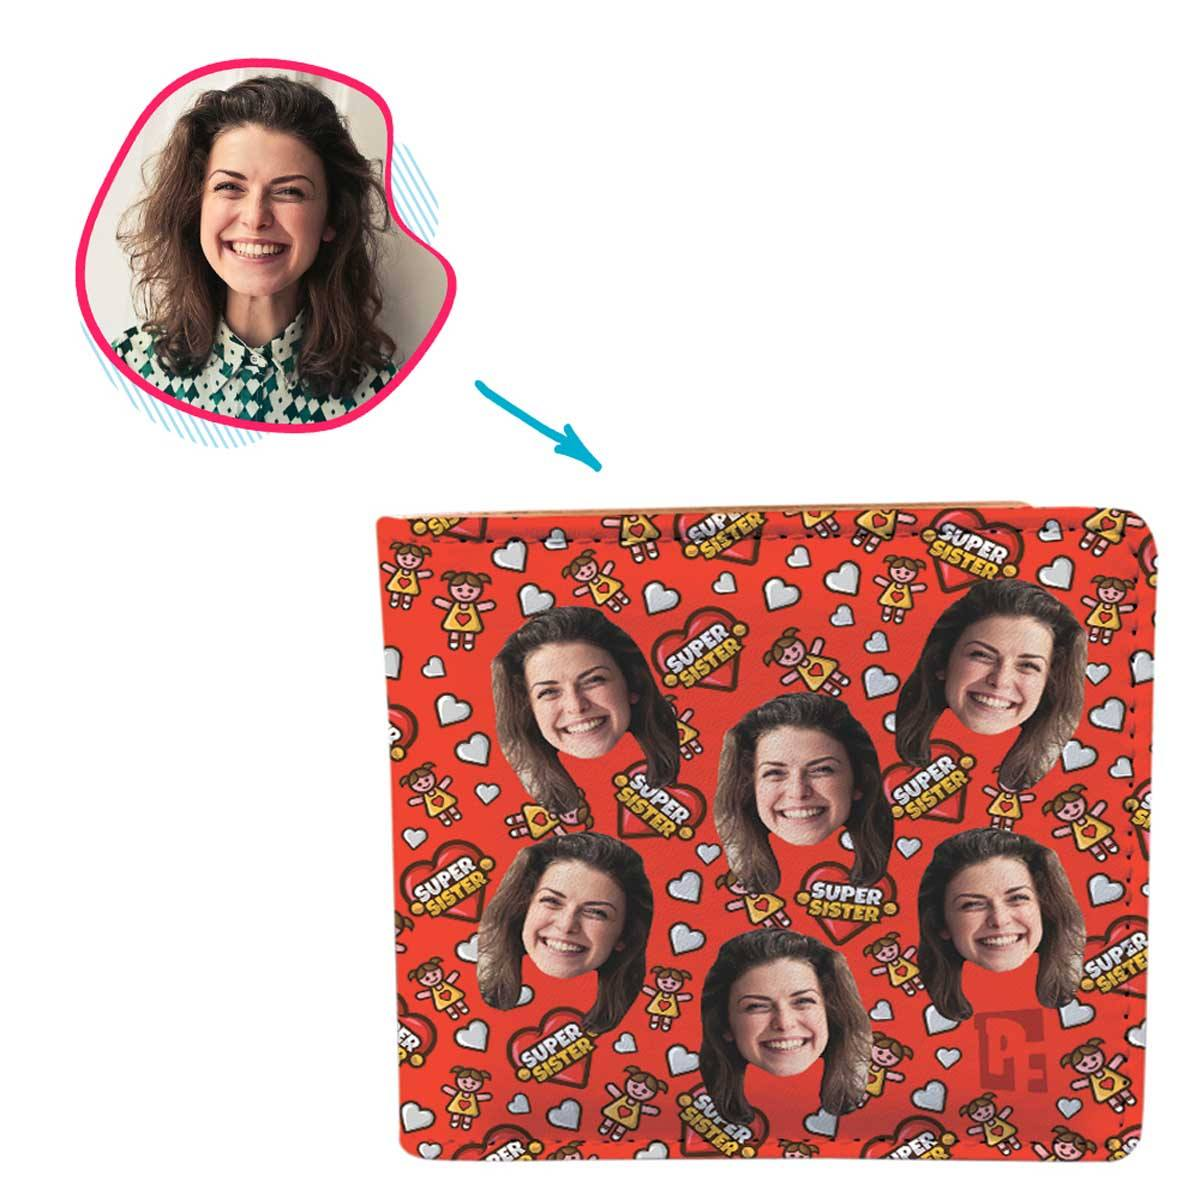 red Super Sister wallet personalized with photo of face printed on it